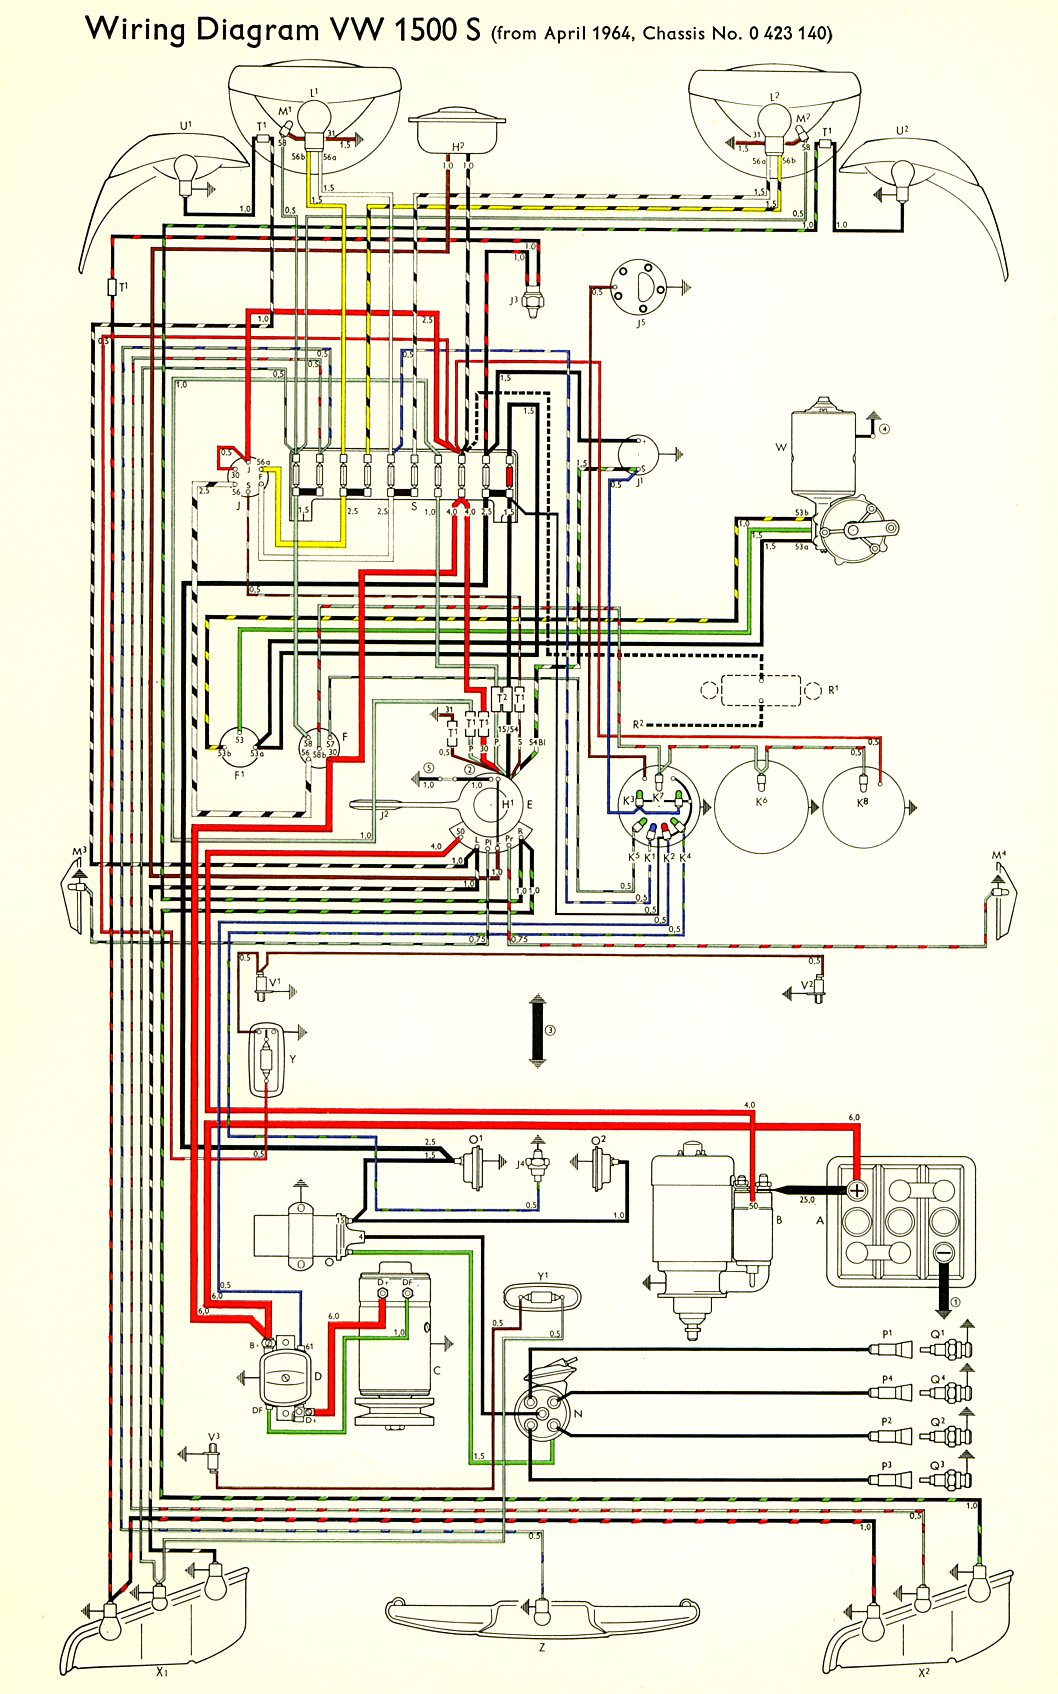 1983 S10 Wiring Diagram furthermore 442687792397418496 further Porsche Engines Basics In The Differences in addition Elschema additionally 2006 Vw Jetta Transmission Solenoid Diagram. on 1966 vw wiring diagram